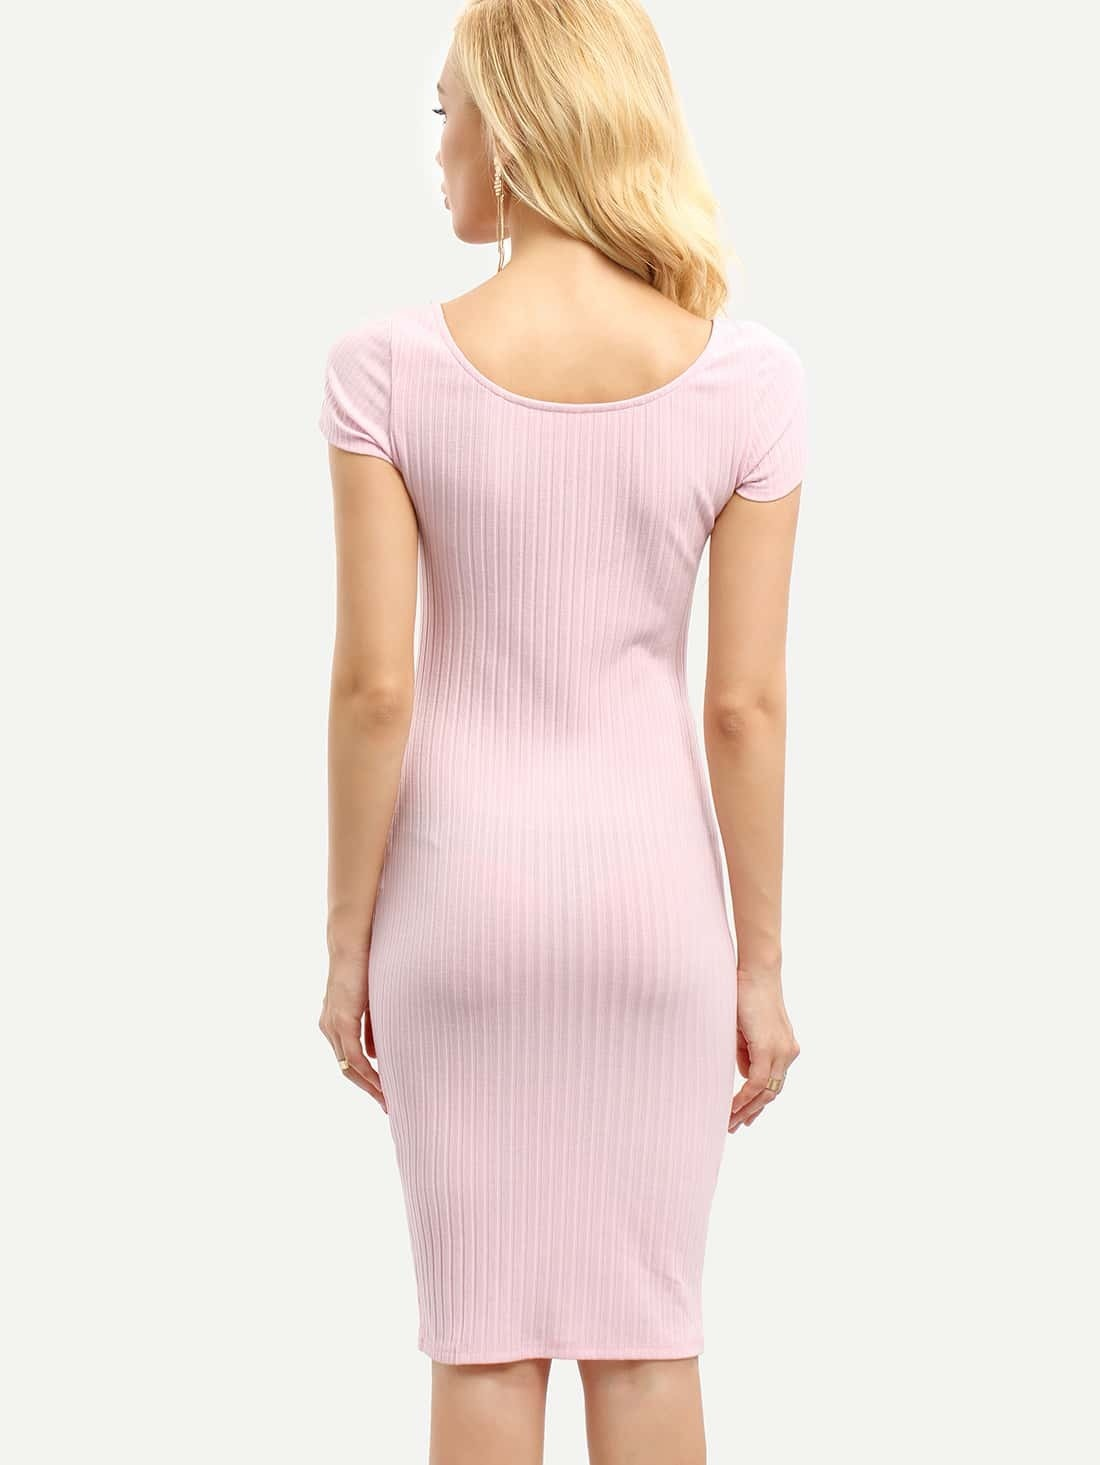 robe moulante creux rose clair french romwe With robe moulante rose